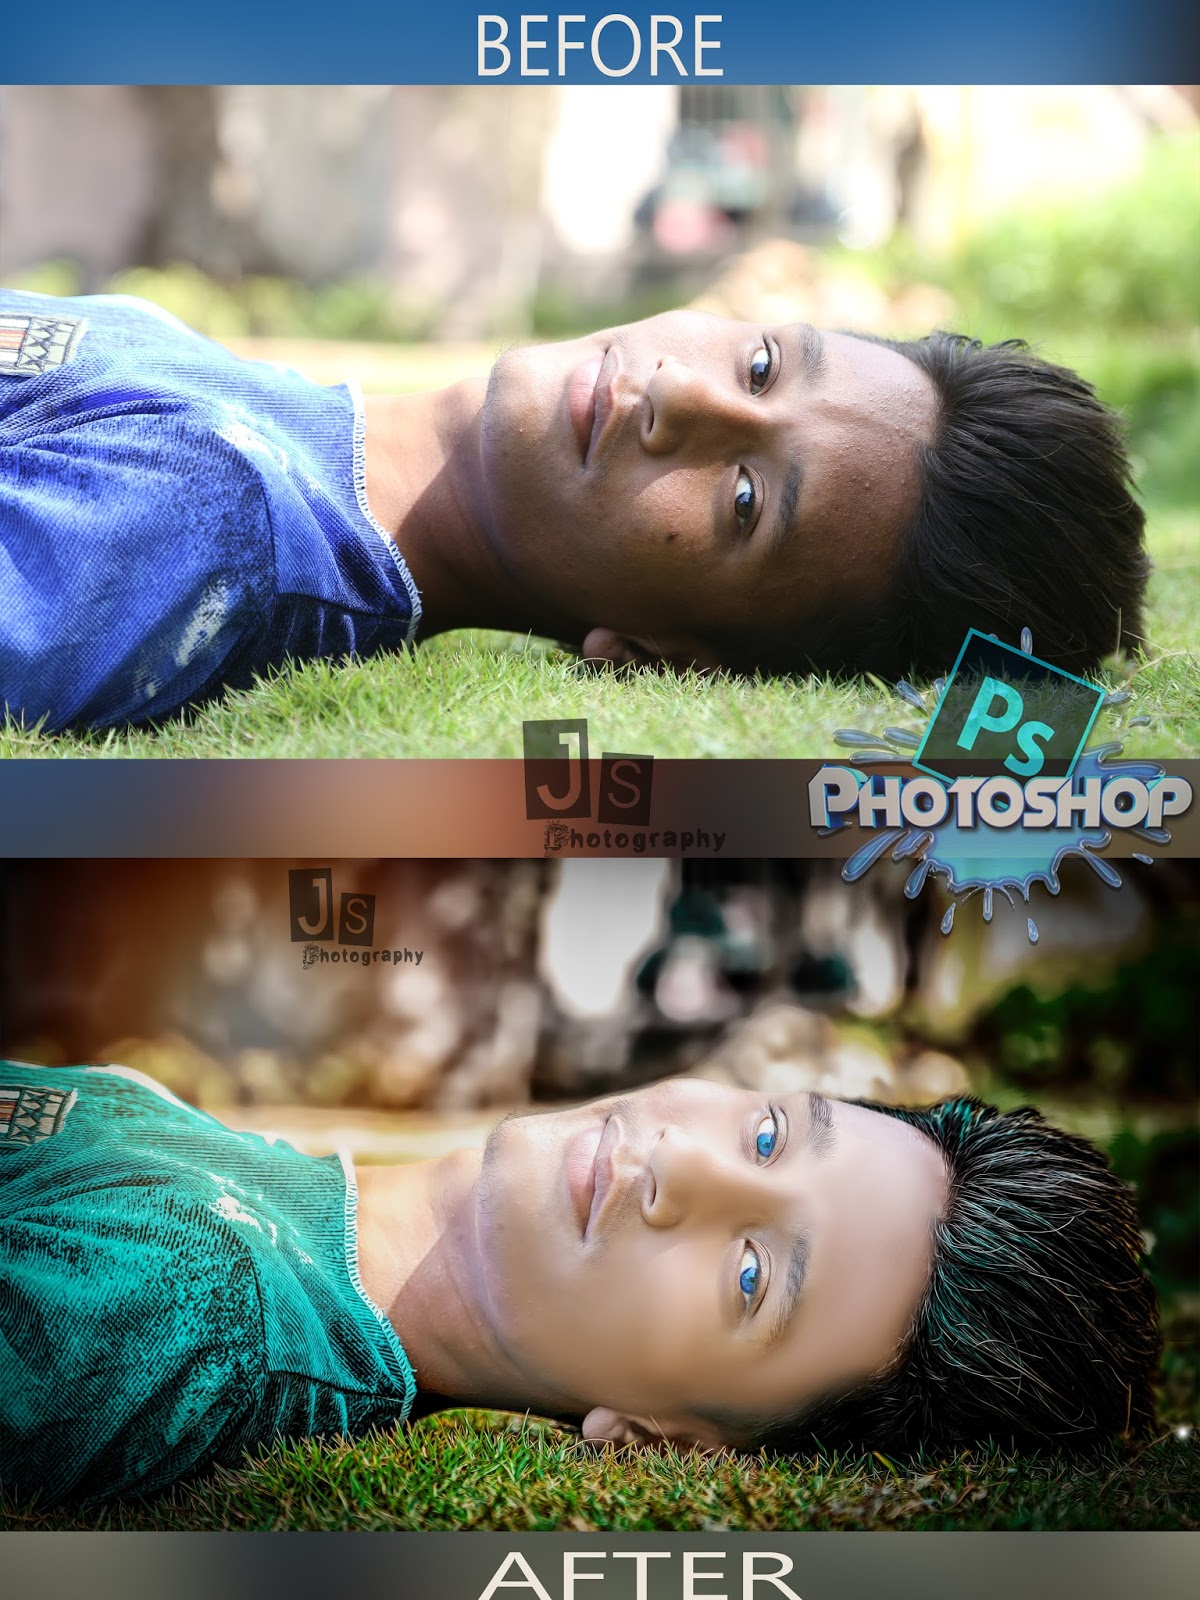 Js Photography How To Edit A Photo Like Professional